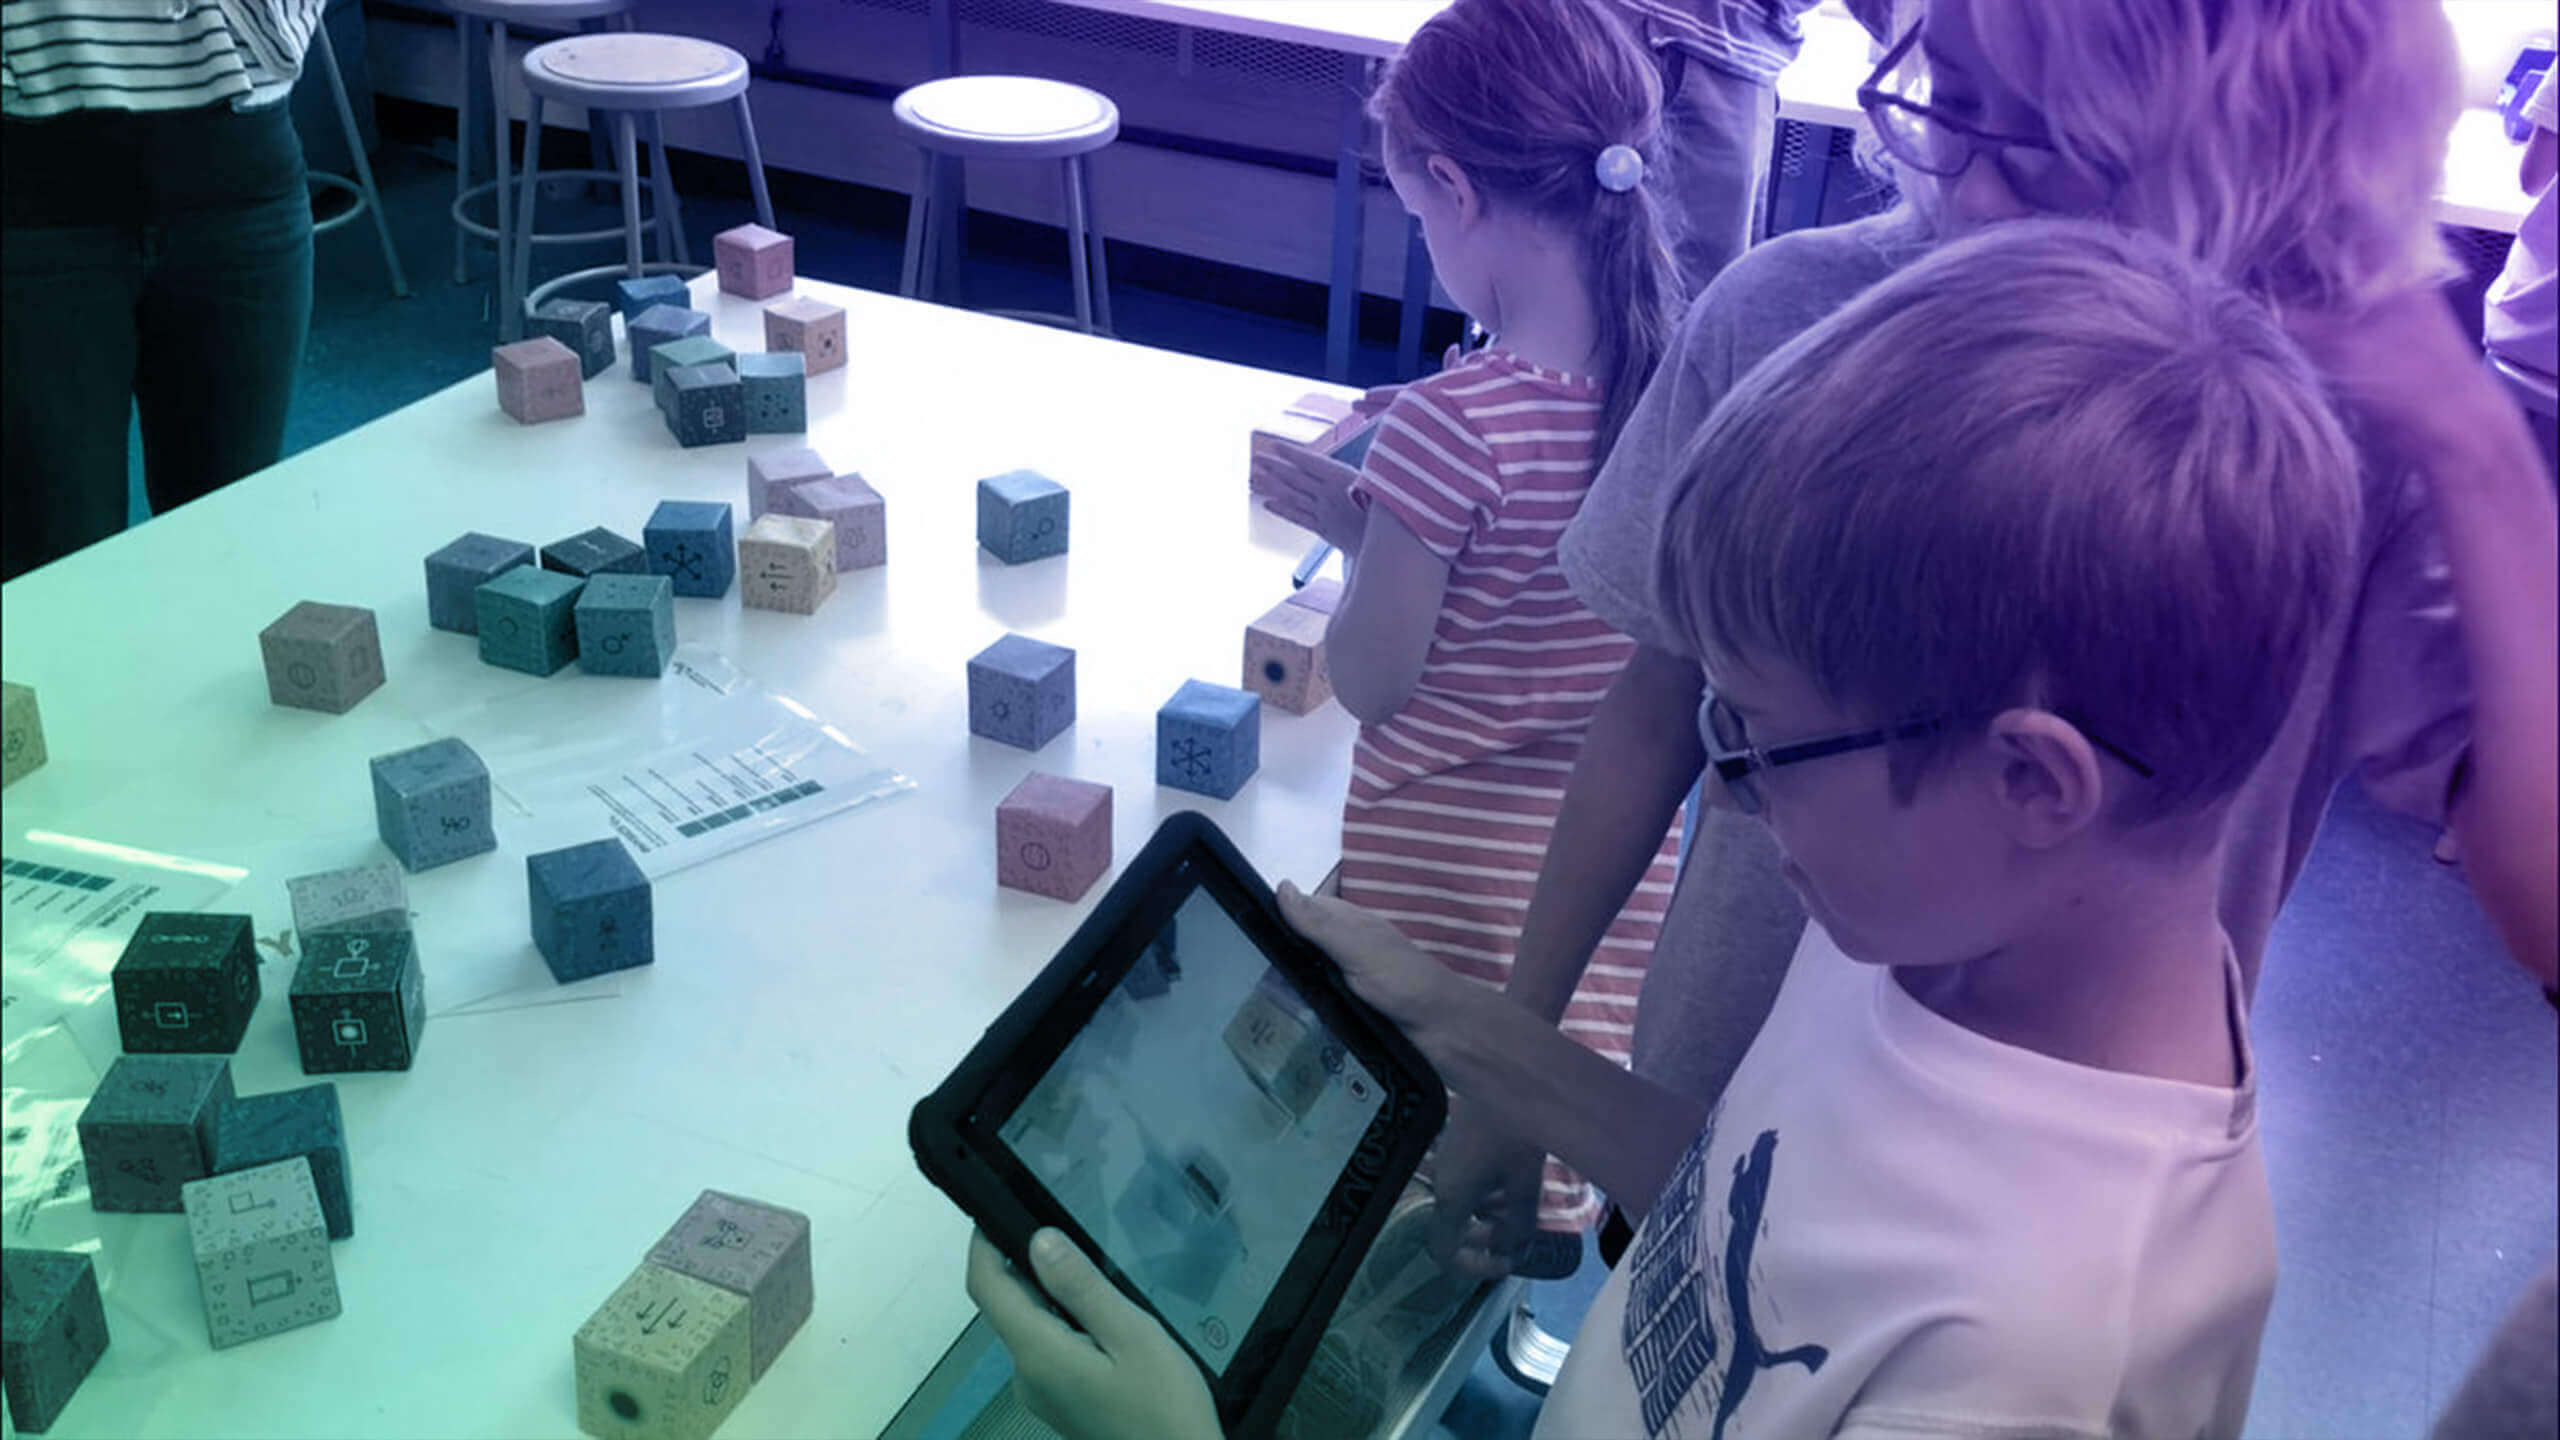 6 ways in which AR can became a game changer for the education sector